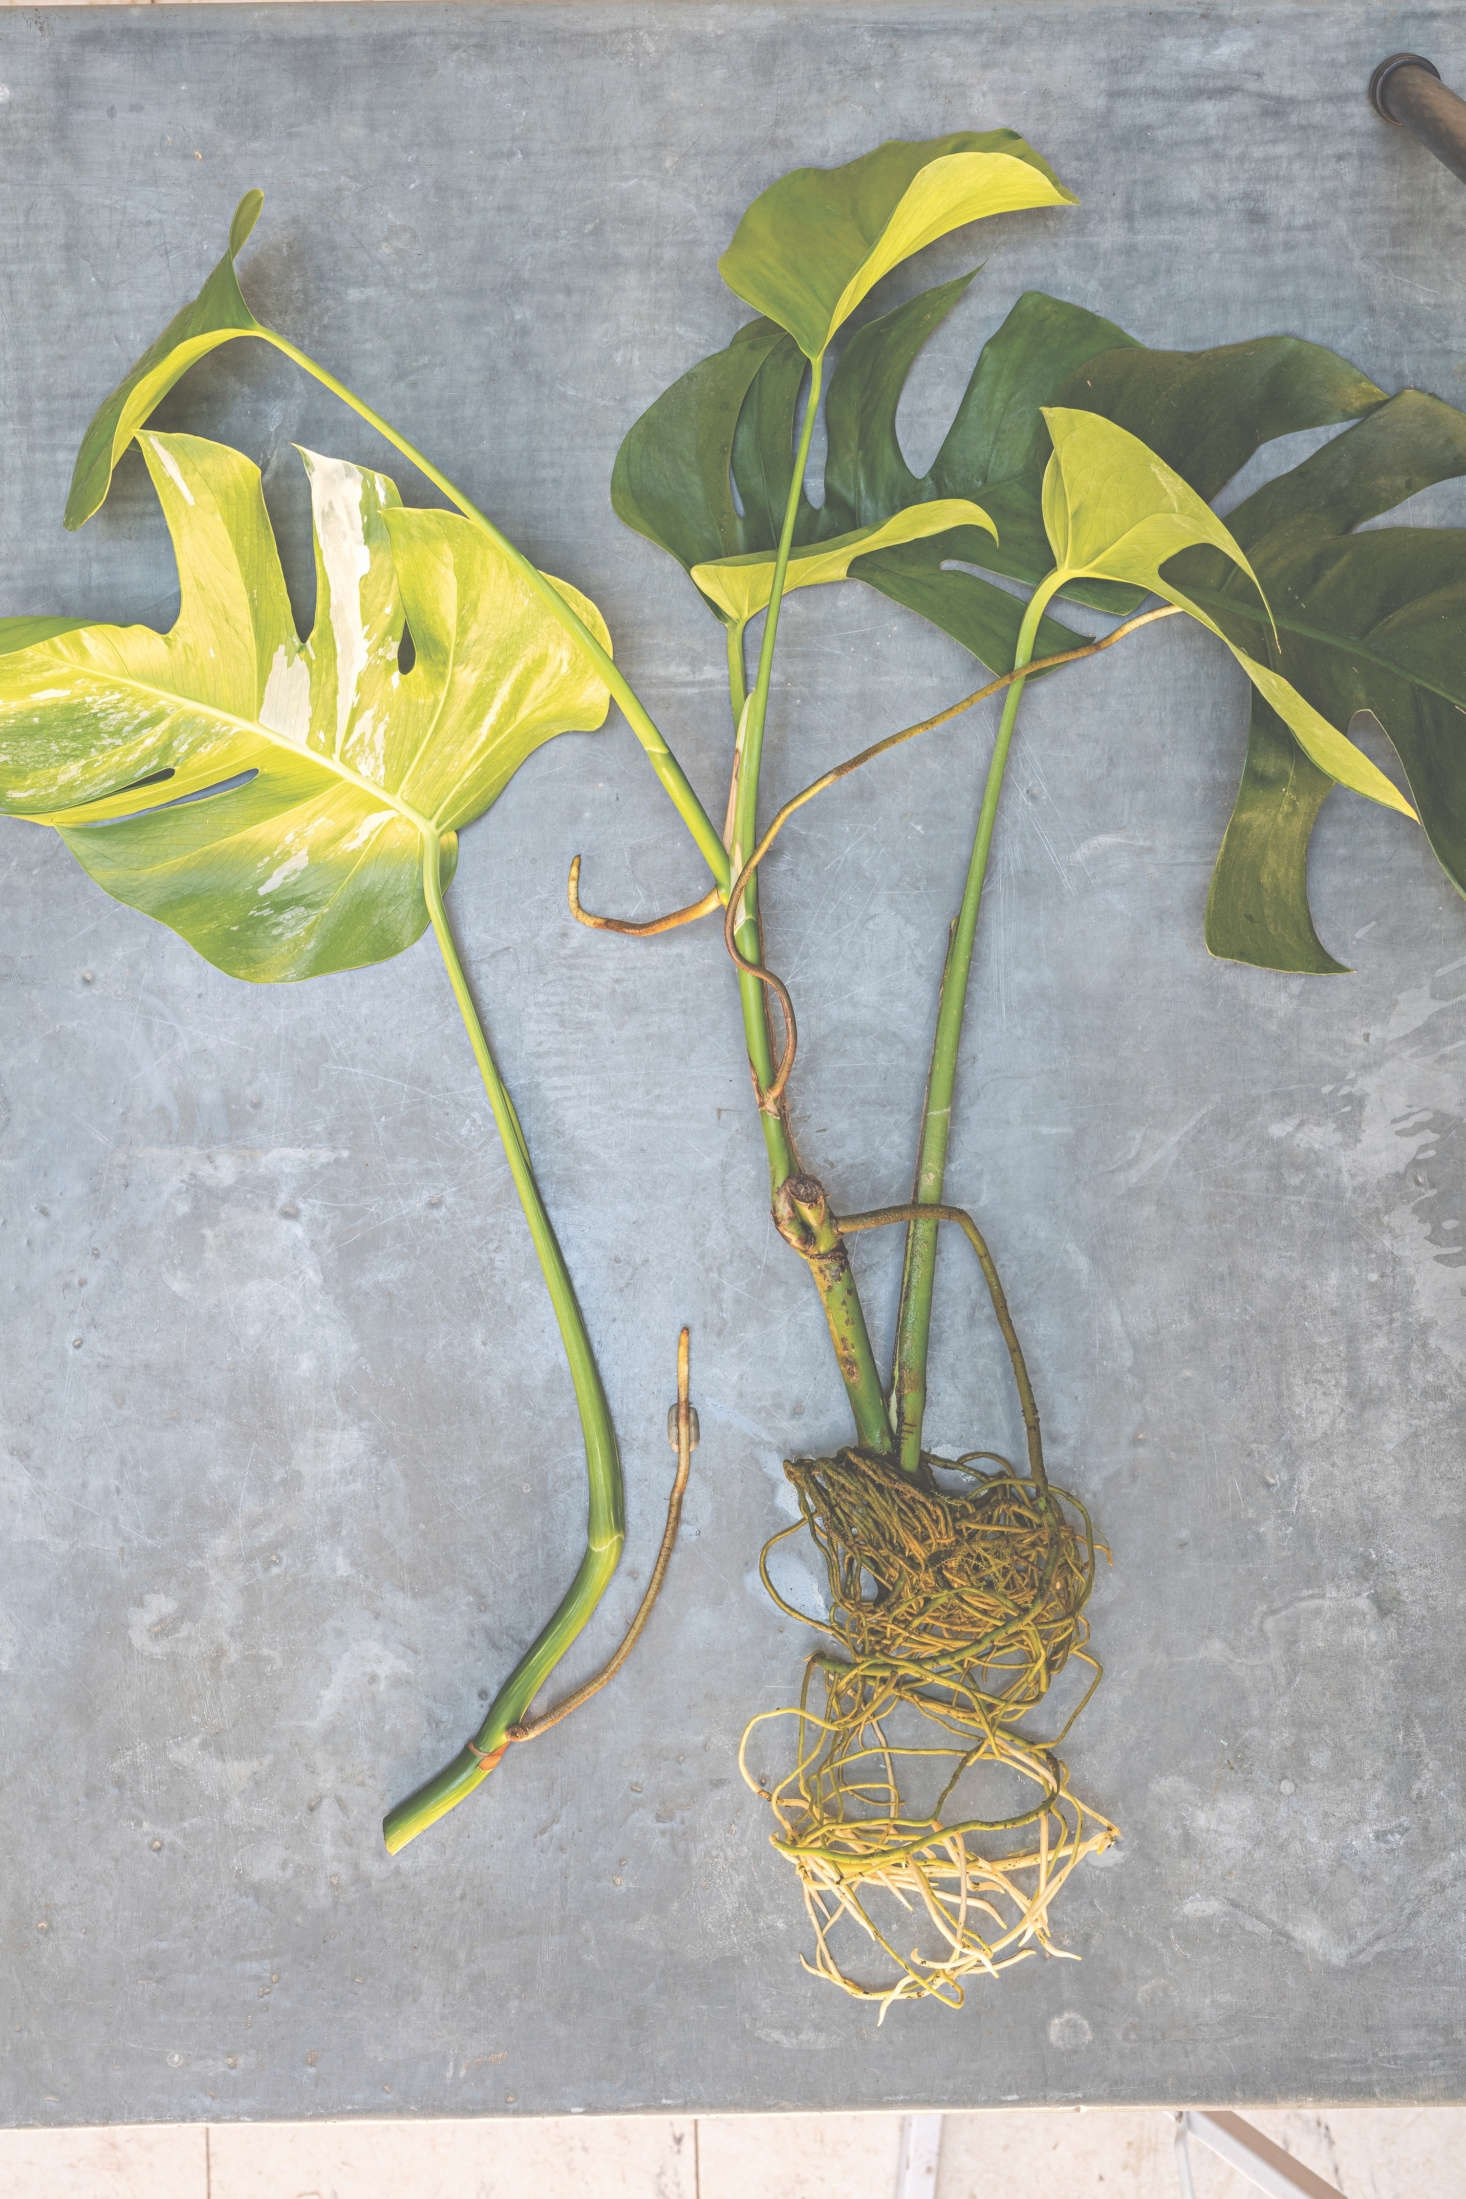 To make more monstera plants, find a branch with a short aerial root growing from it. Cut it above a node on the mother plant and put the cutting into a vase of clean water. When the roots are from 3 to 5 centimeters long, you can pot the cutting or simply leave it in water where the roots will continue to grow. Cuttings will strike best when they are taken in the growing season.